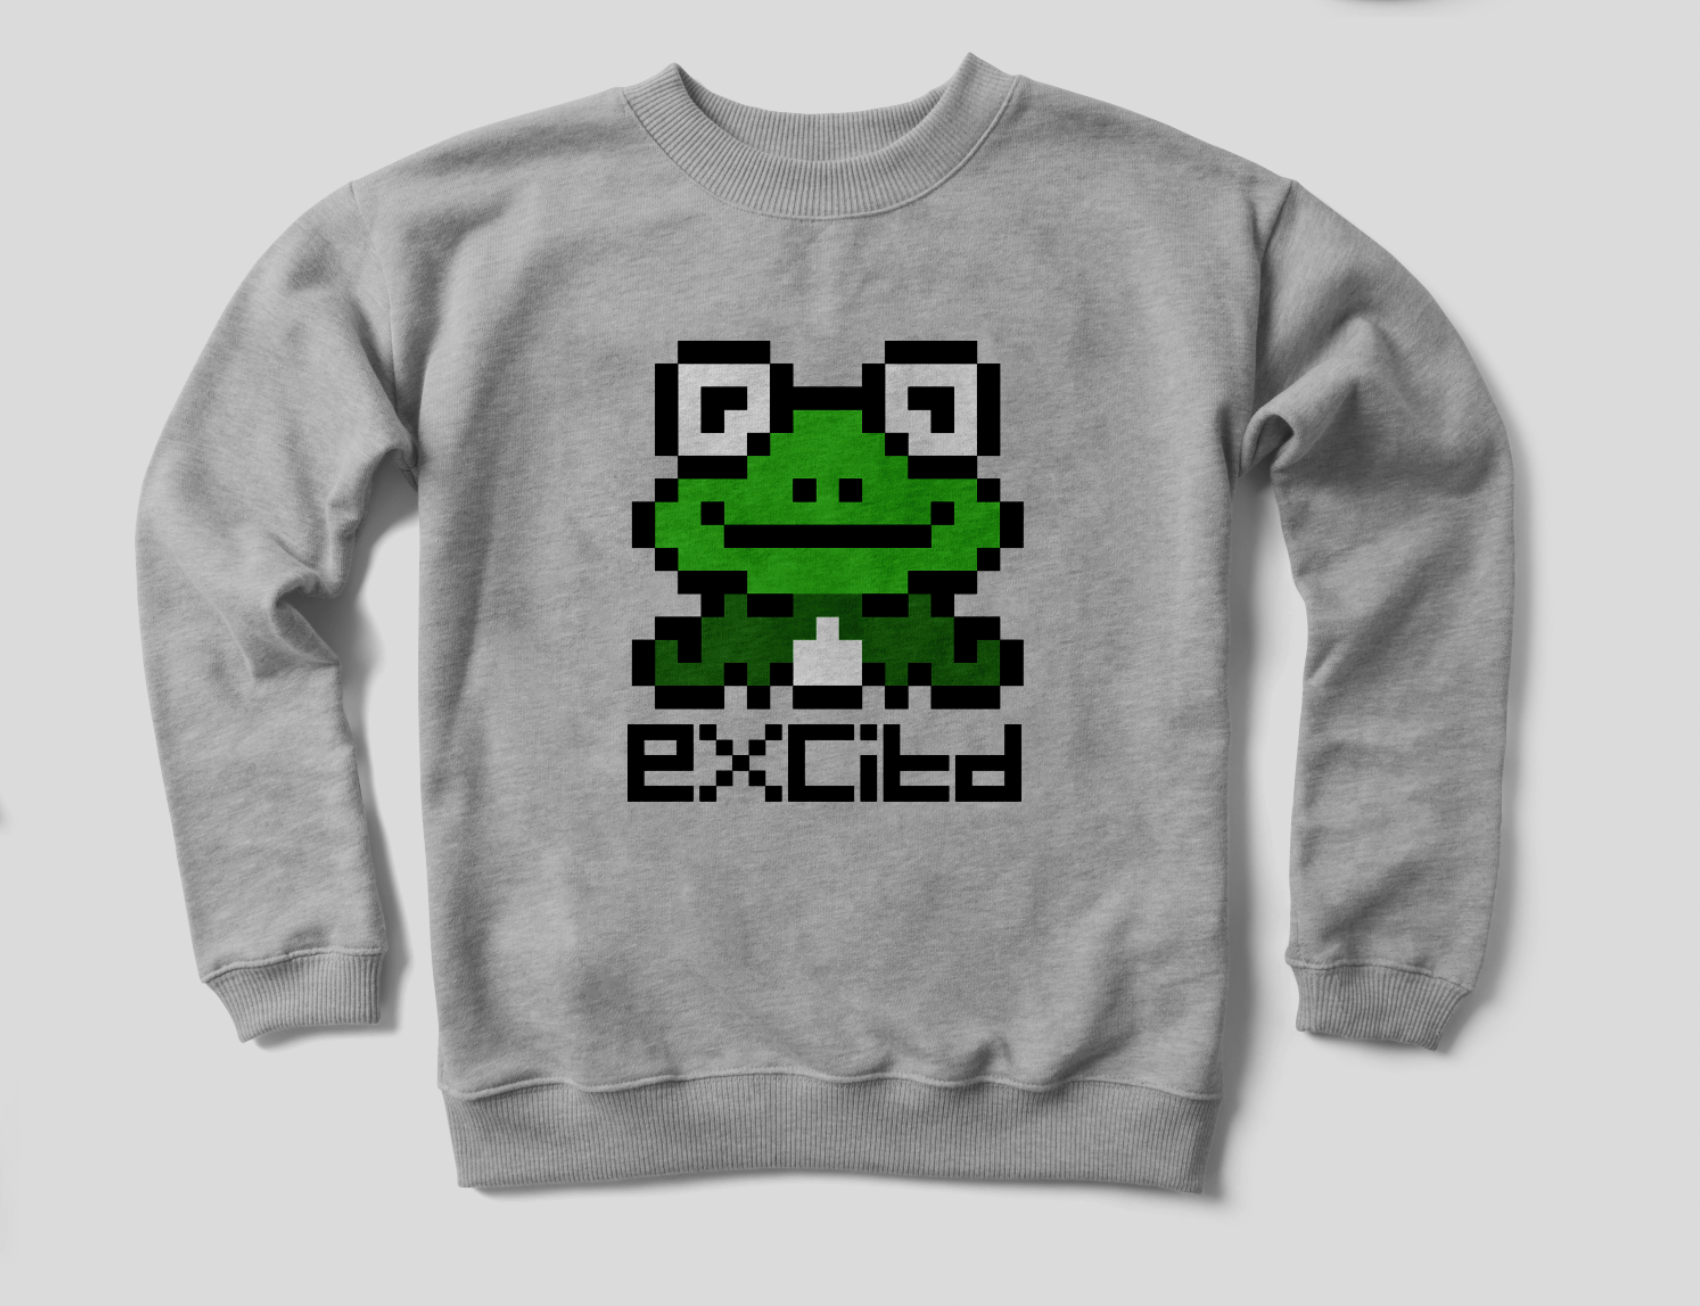 Sweatshirt Design.